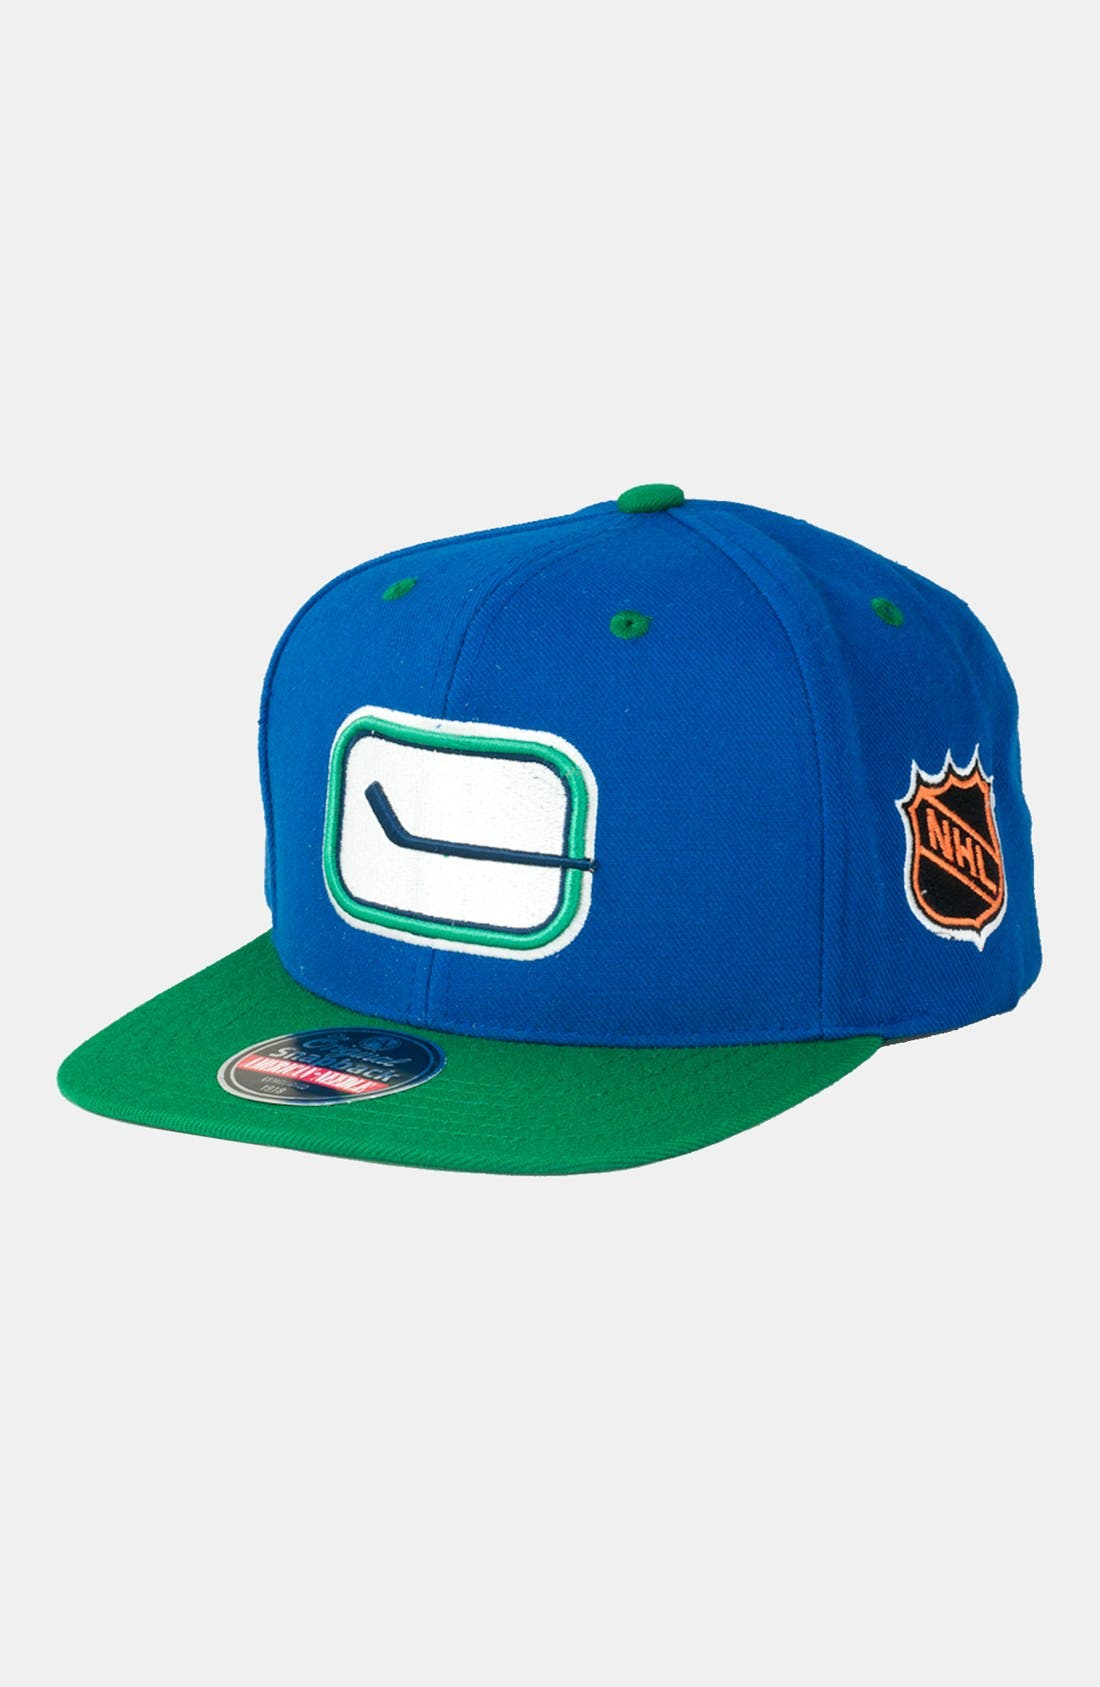 Alternate Image 1 Selected - American Needle 'Vancouver Canucks - Blockhead' Snapback Hockey Cap